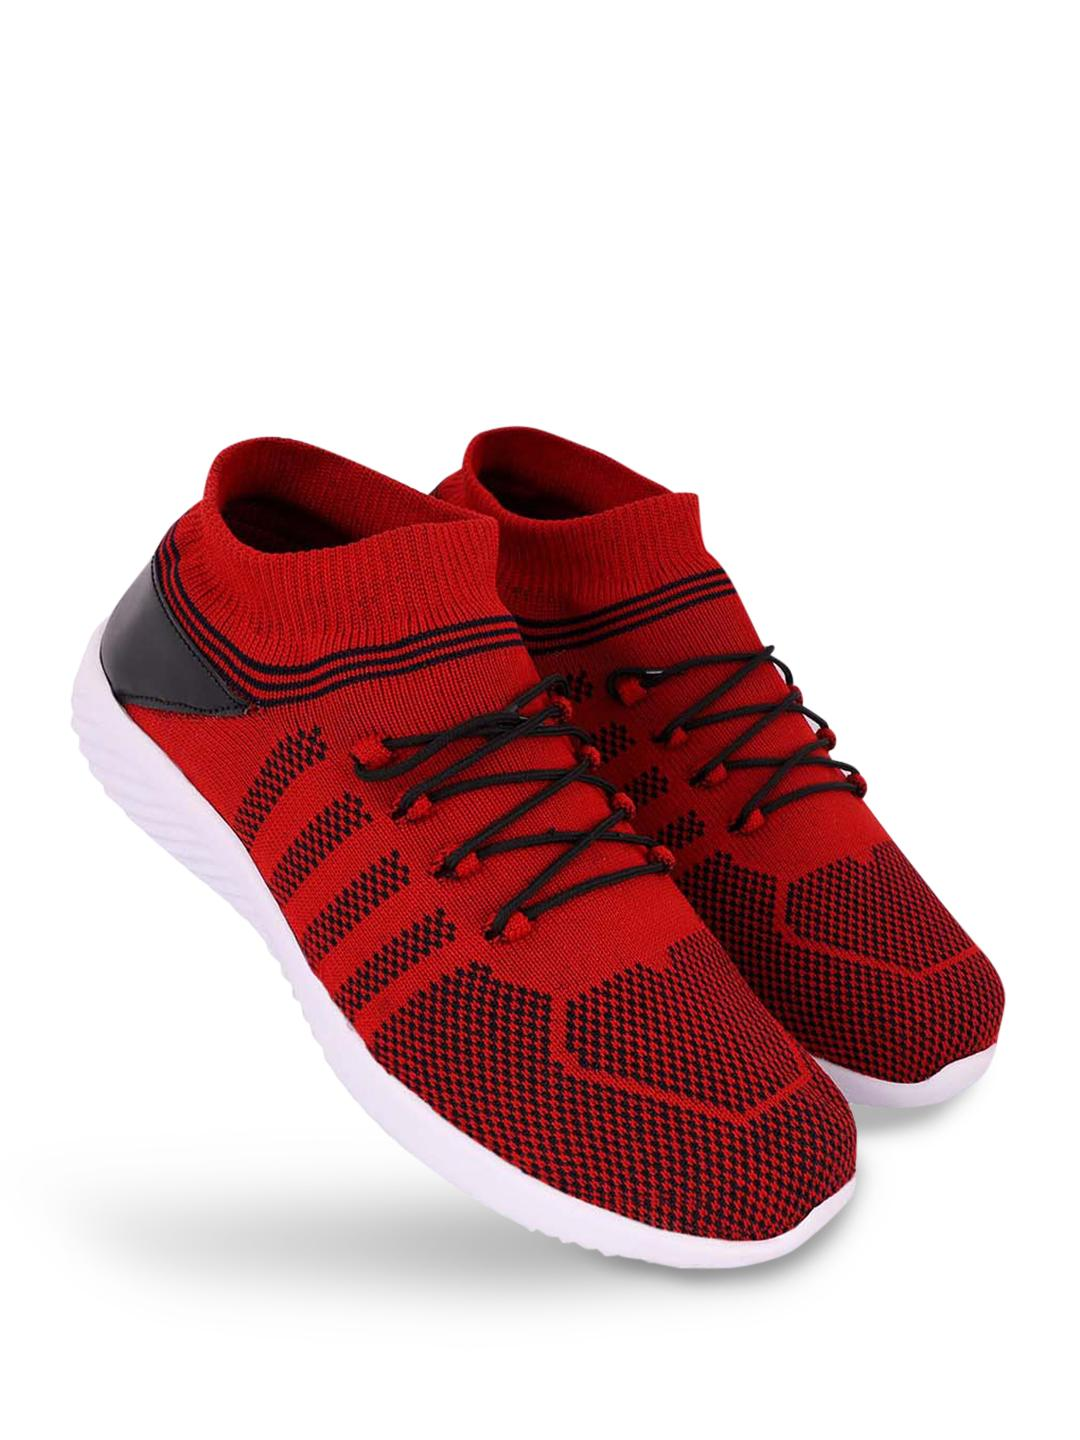 KLEAT Red Flyknit Upper Lace-Up Shoes 1